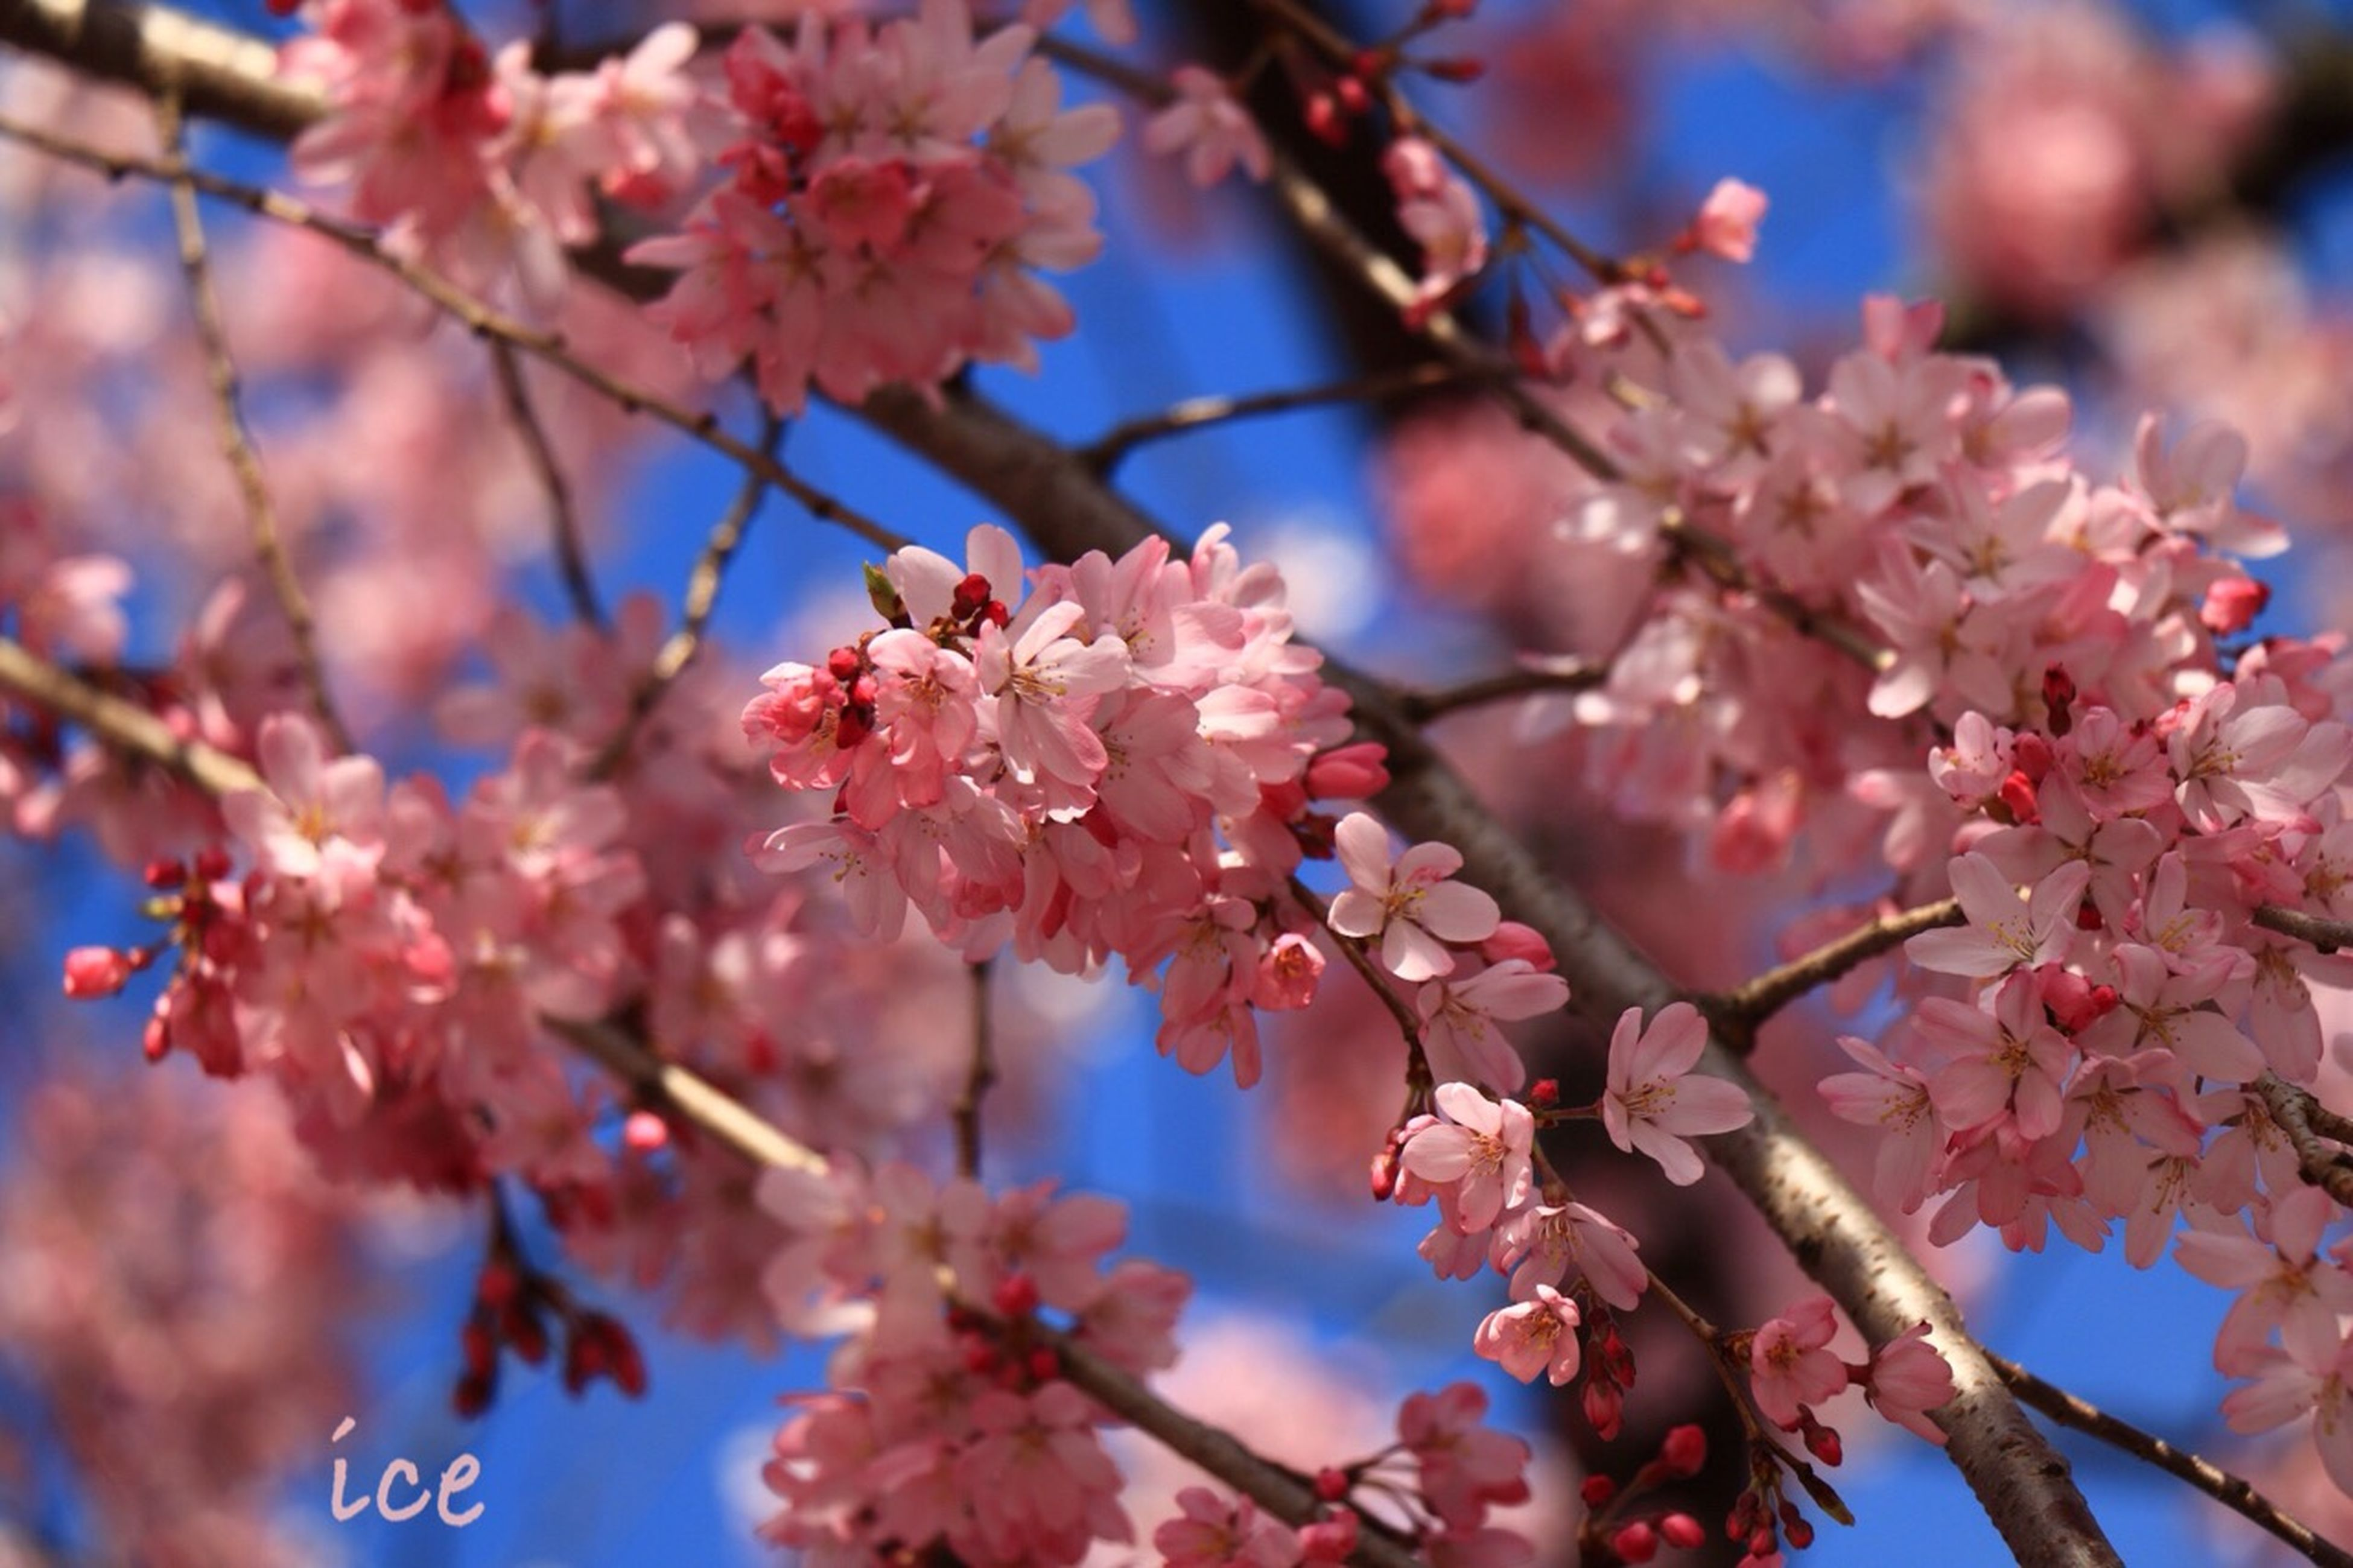 flower, branch, tree, freshness, growth, cherry blossom, cherry tree, low angle view, beauty in nature, blossom, fragility, nature, pink color, fruit tree, twig, springtime, focus on foreground, orchard, in bloom, blooming